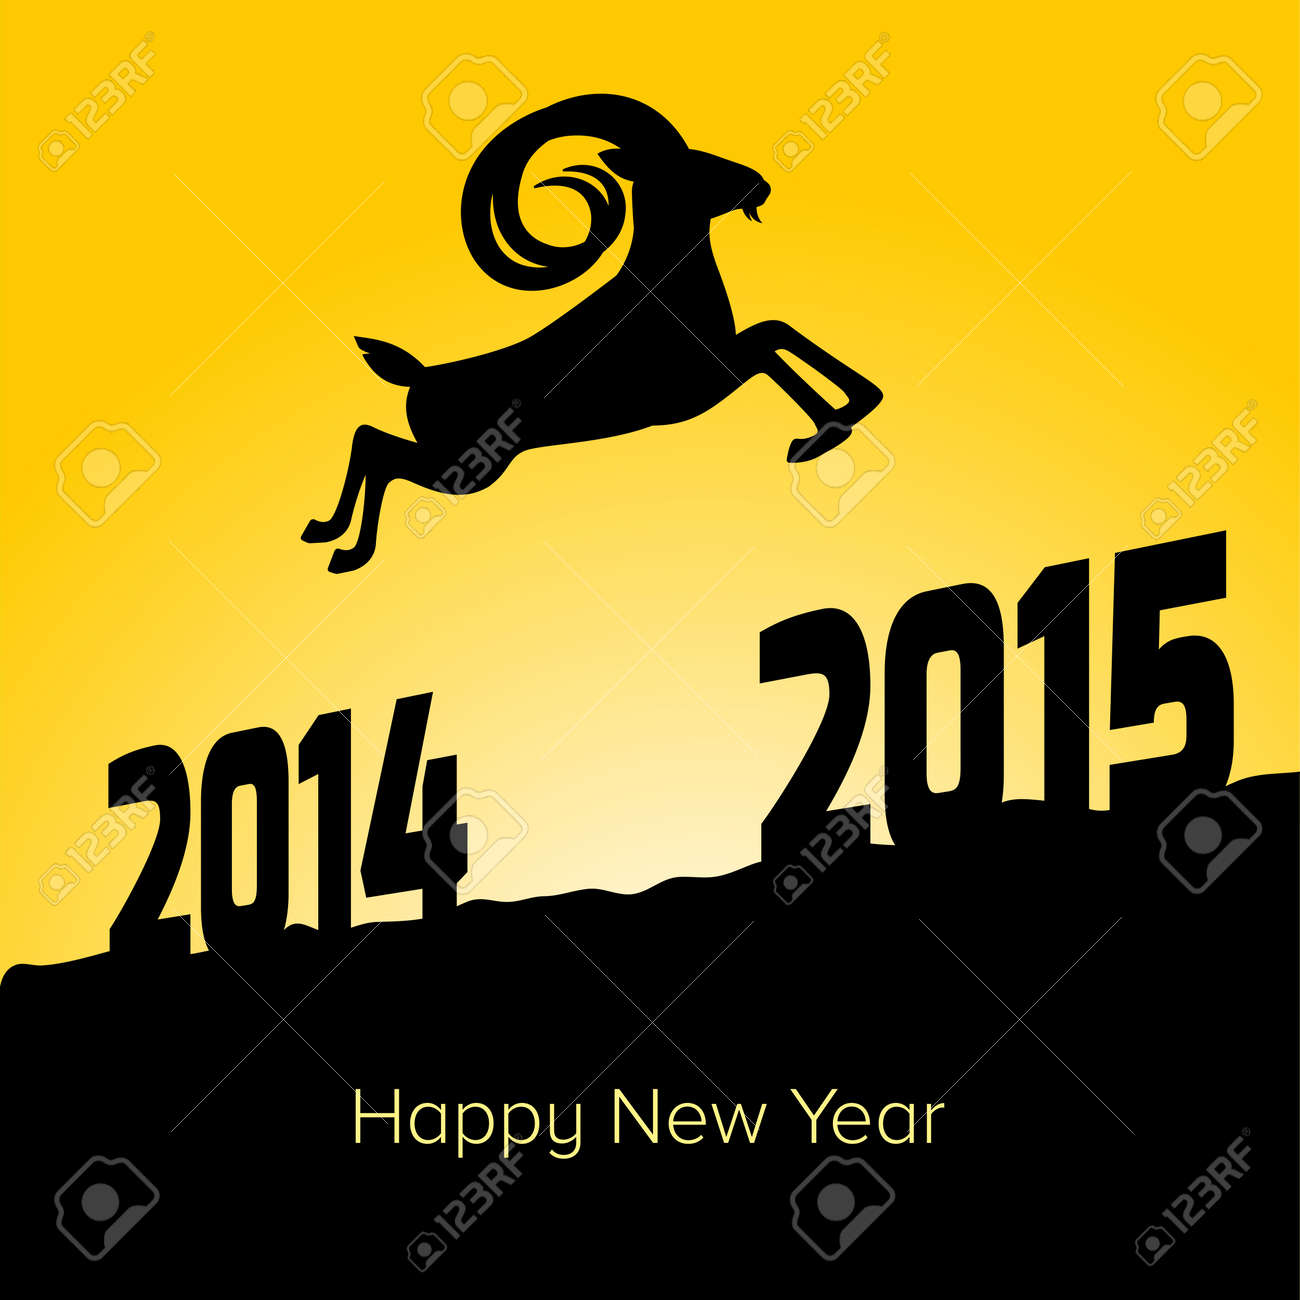 Happy new year 2015 greeting card a goat jumping from year 2014 happy new year 2015 greeting card a goat jumping from year 2014 to year 2015 m4hsunfo